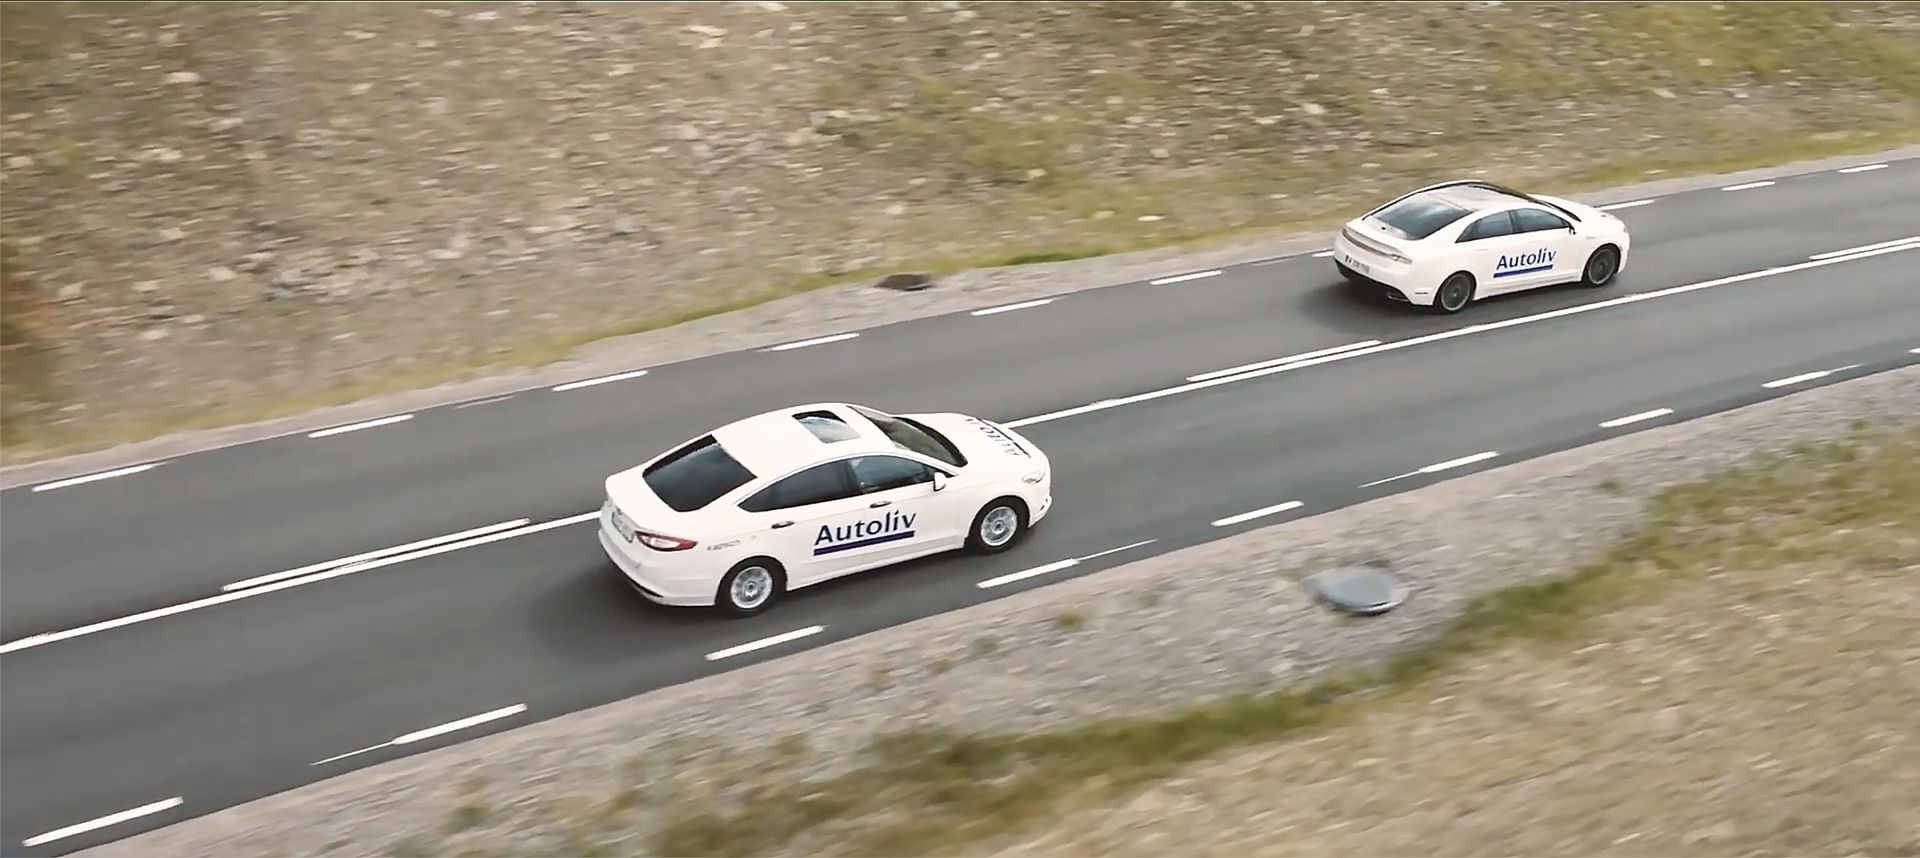 Autoliv_Test Cars_driving